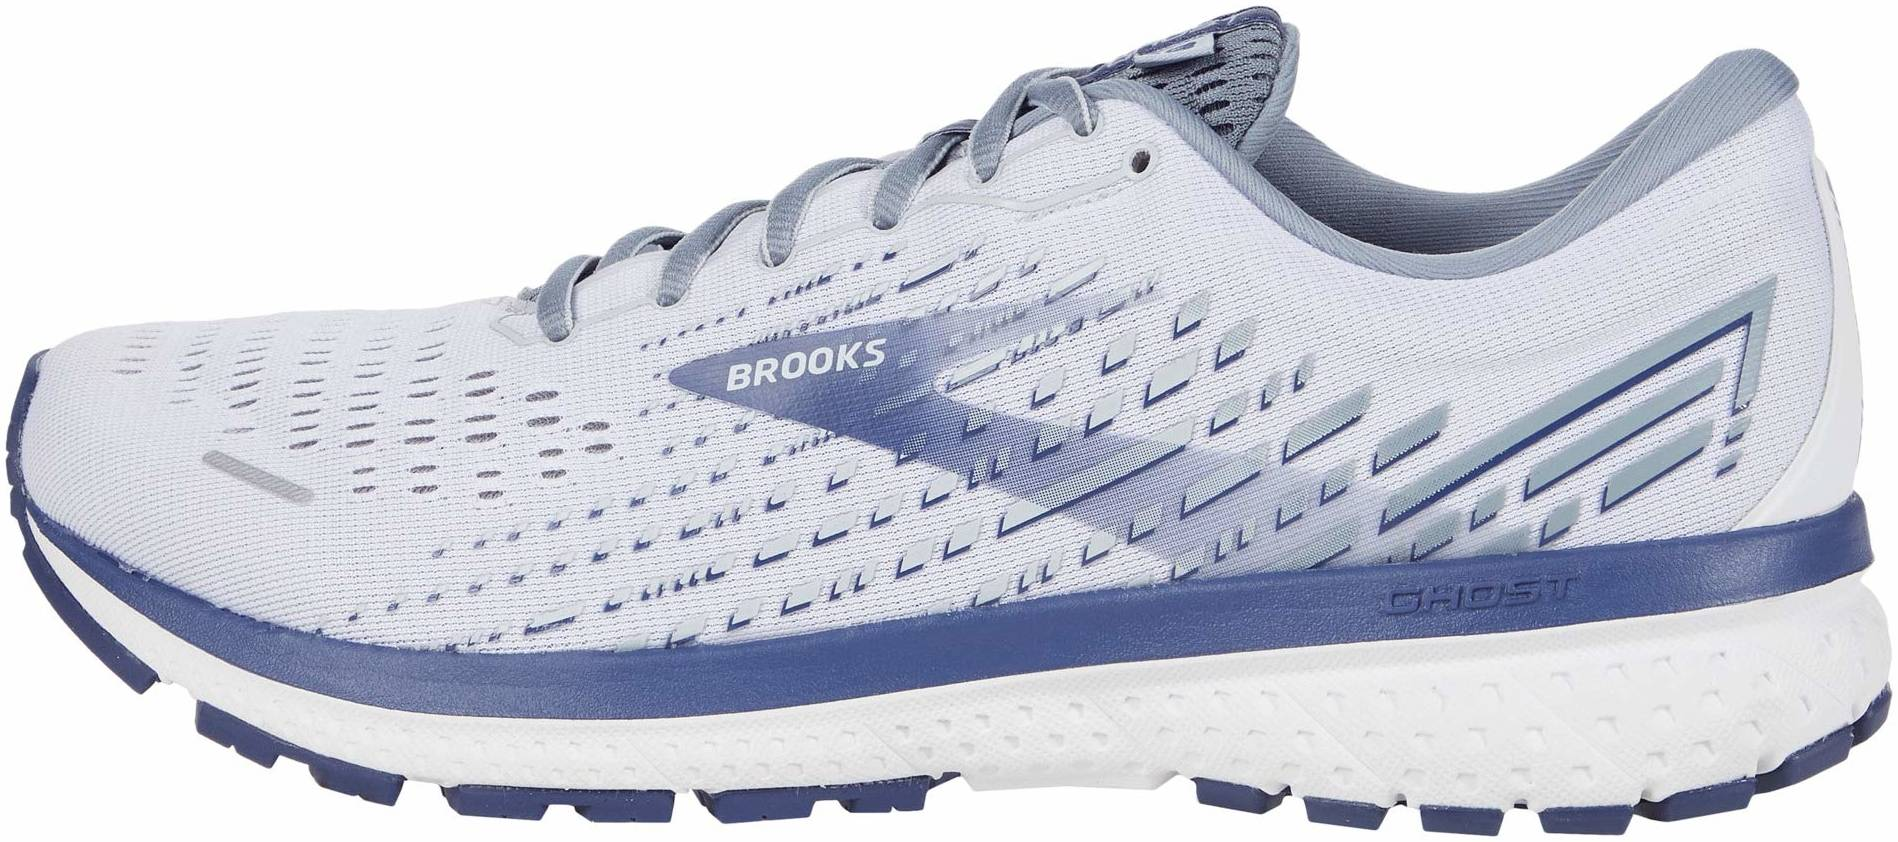 Save 39% on Narrow Running Shoes (51